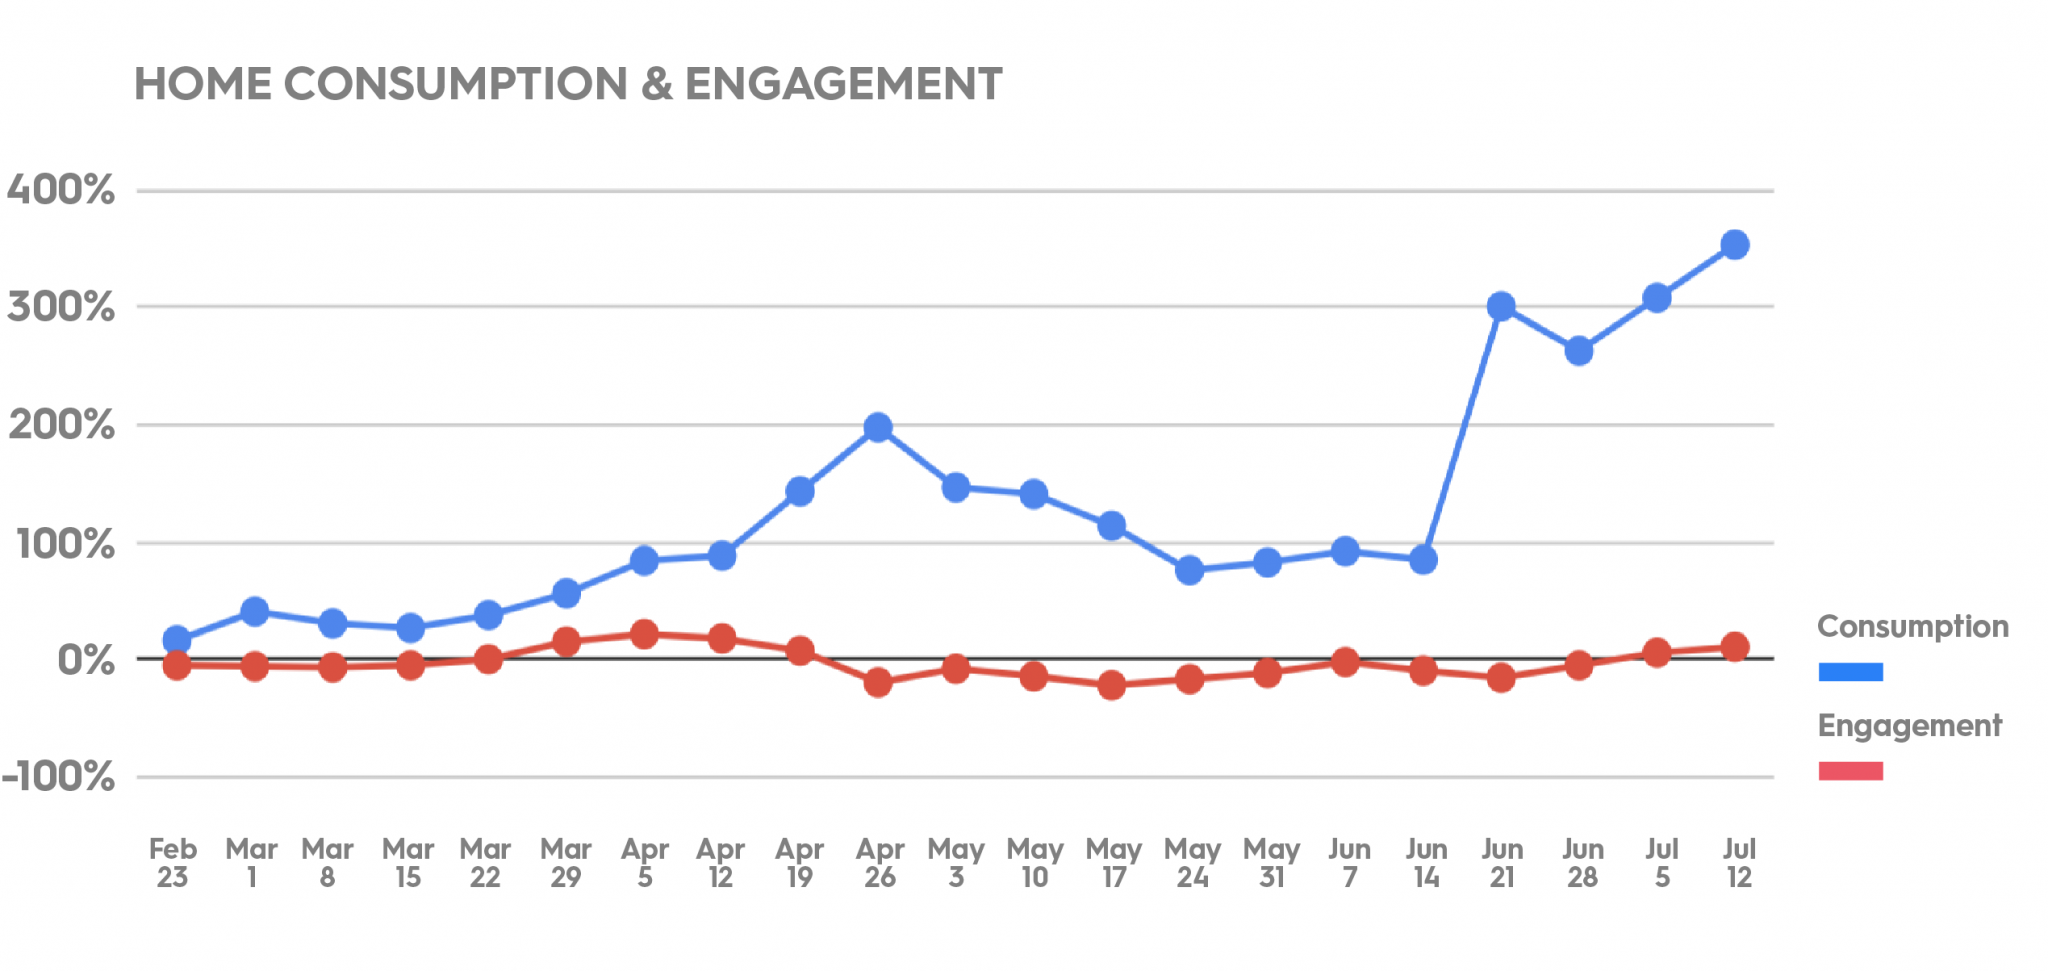 Home consumption and engagement